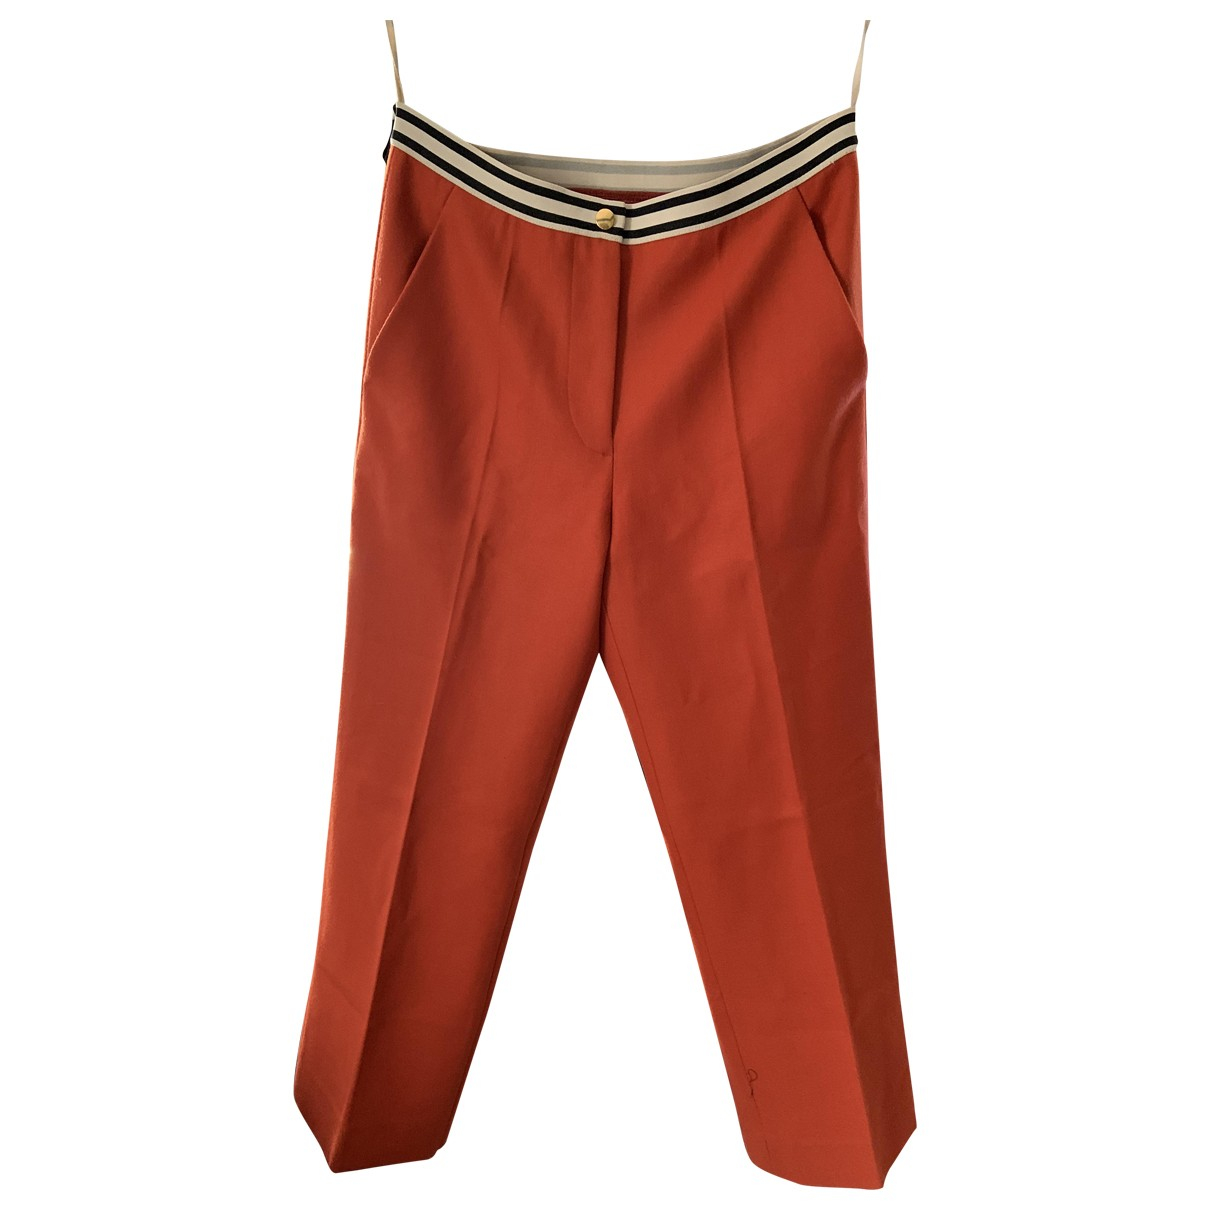 Marni \N Orange Wool Trousers for Women 40 IT